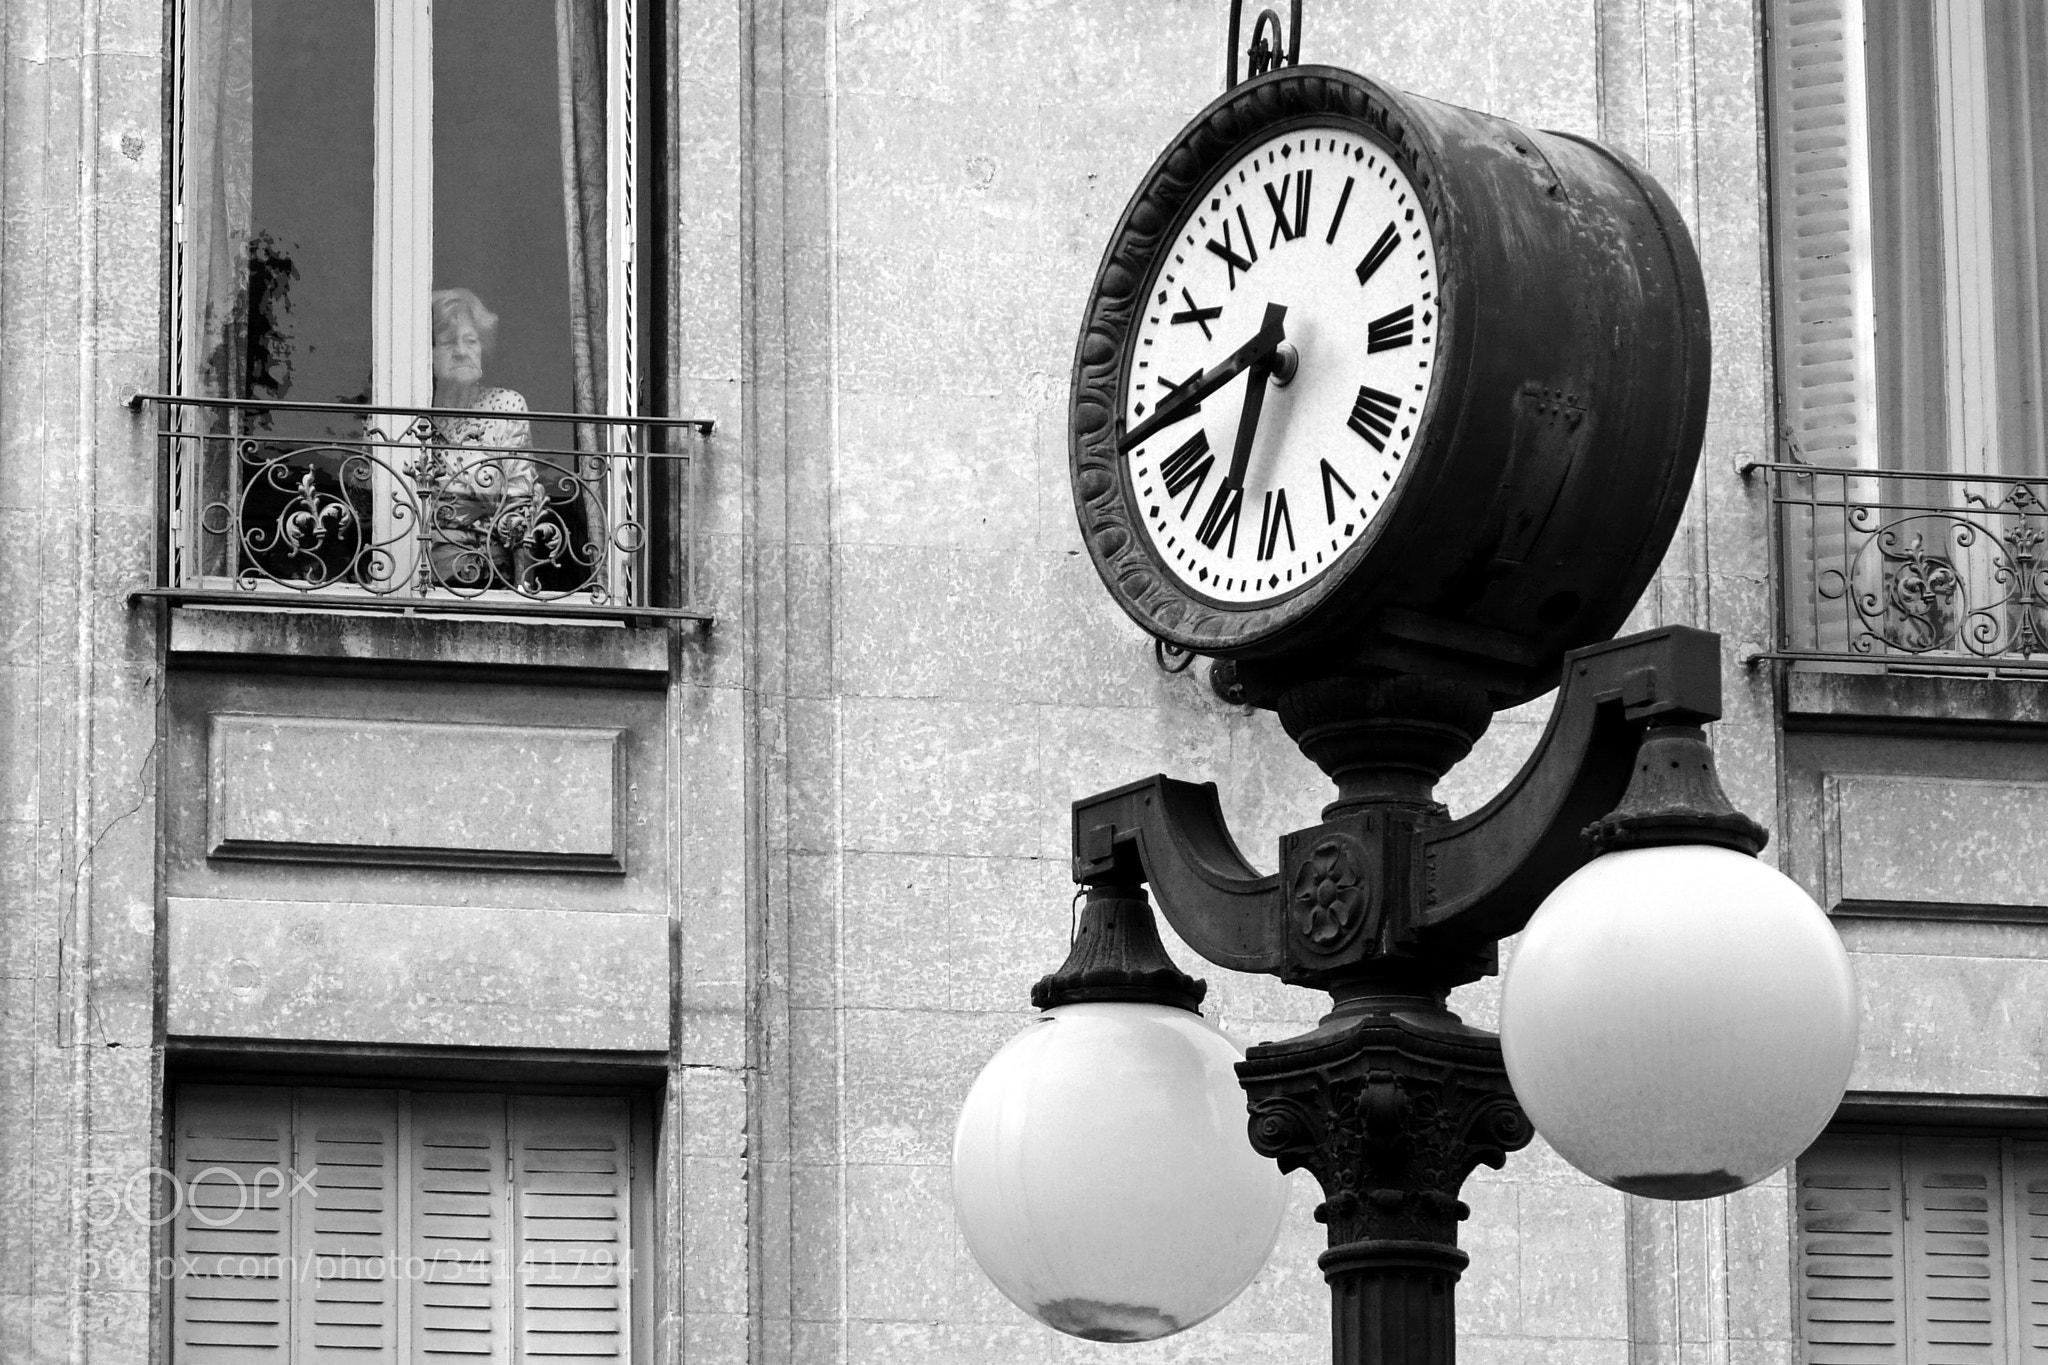 Photograph The Clock is ticking by Florent TIJOU on 500px